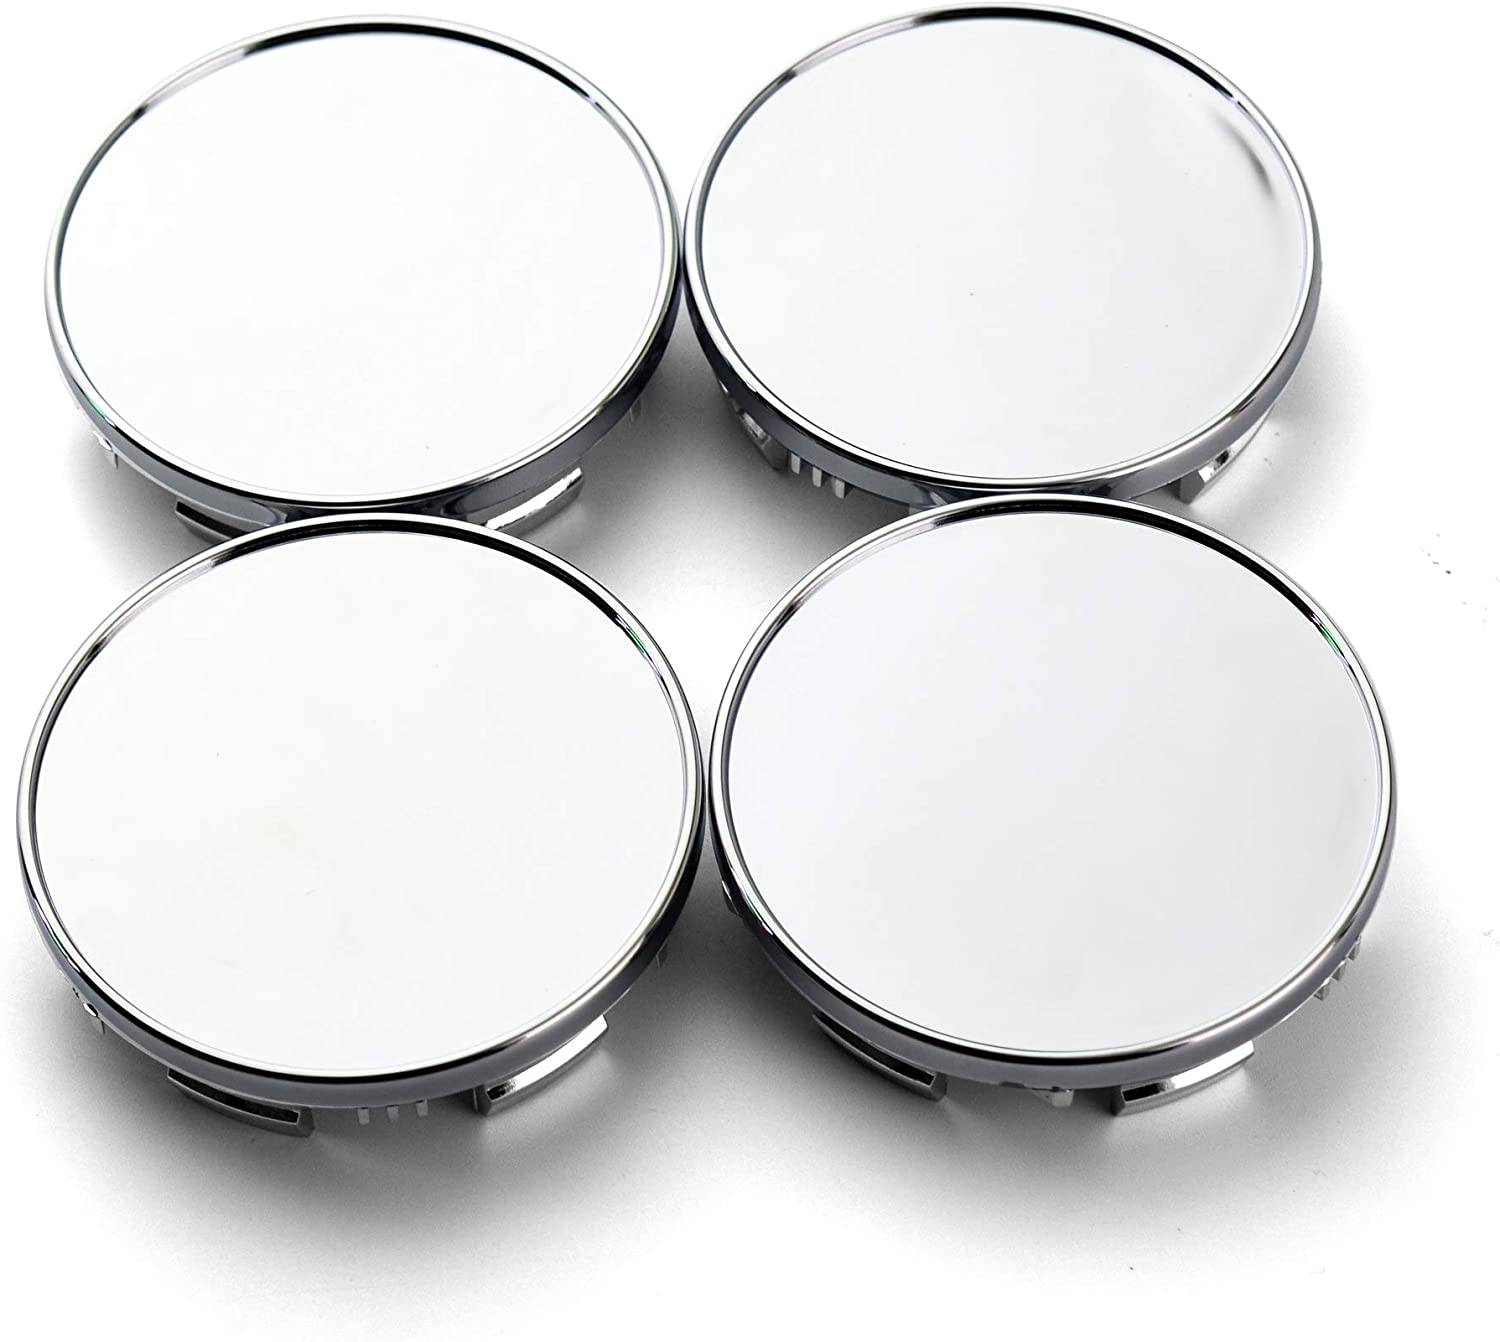 85mm(3.34in)/78mm(3.07in) Chrome Silver Car Wheel Center Hub Caps Set of 4 for Titan(2004-2012) Armada(2004-2012) #40342-7S500